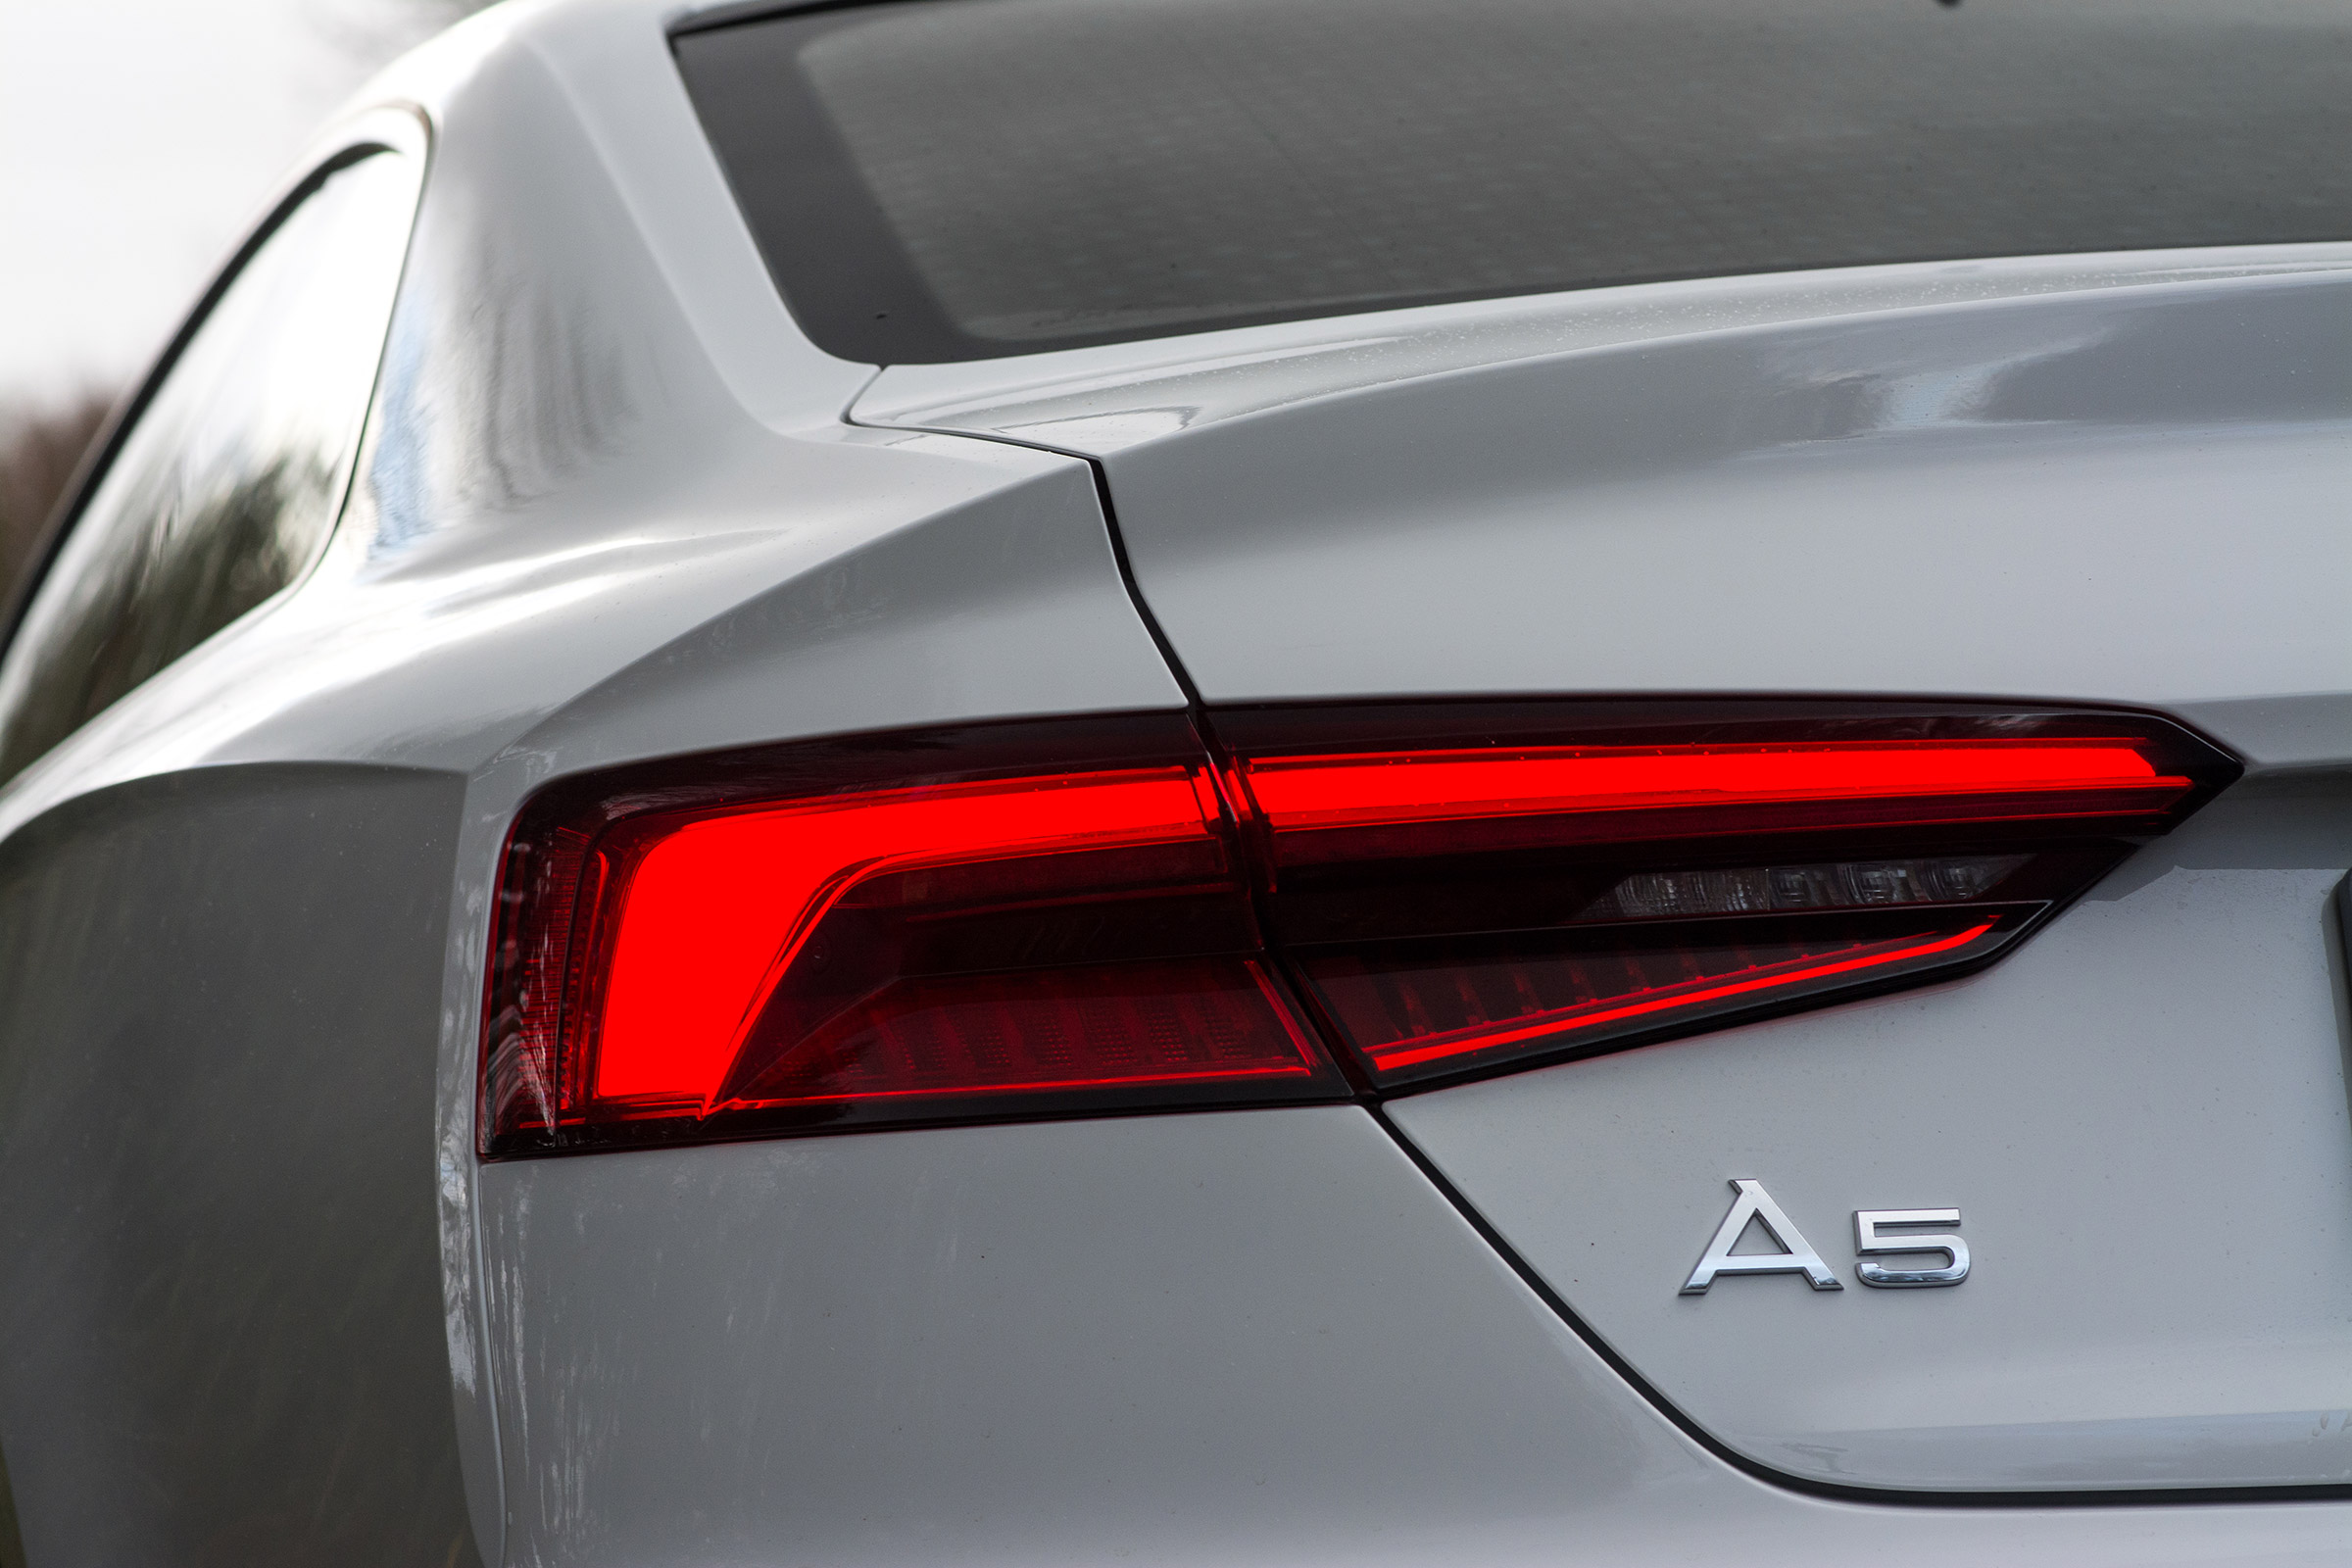 2017 Audi A5 Coupe Exterior View Taillight (View 18 of 21)